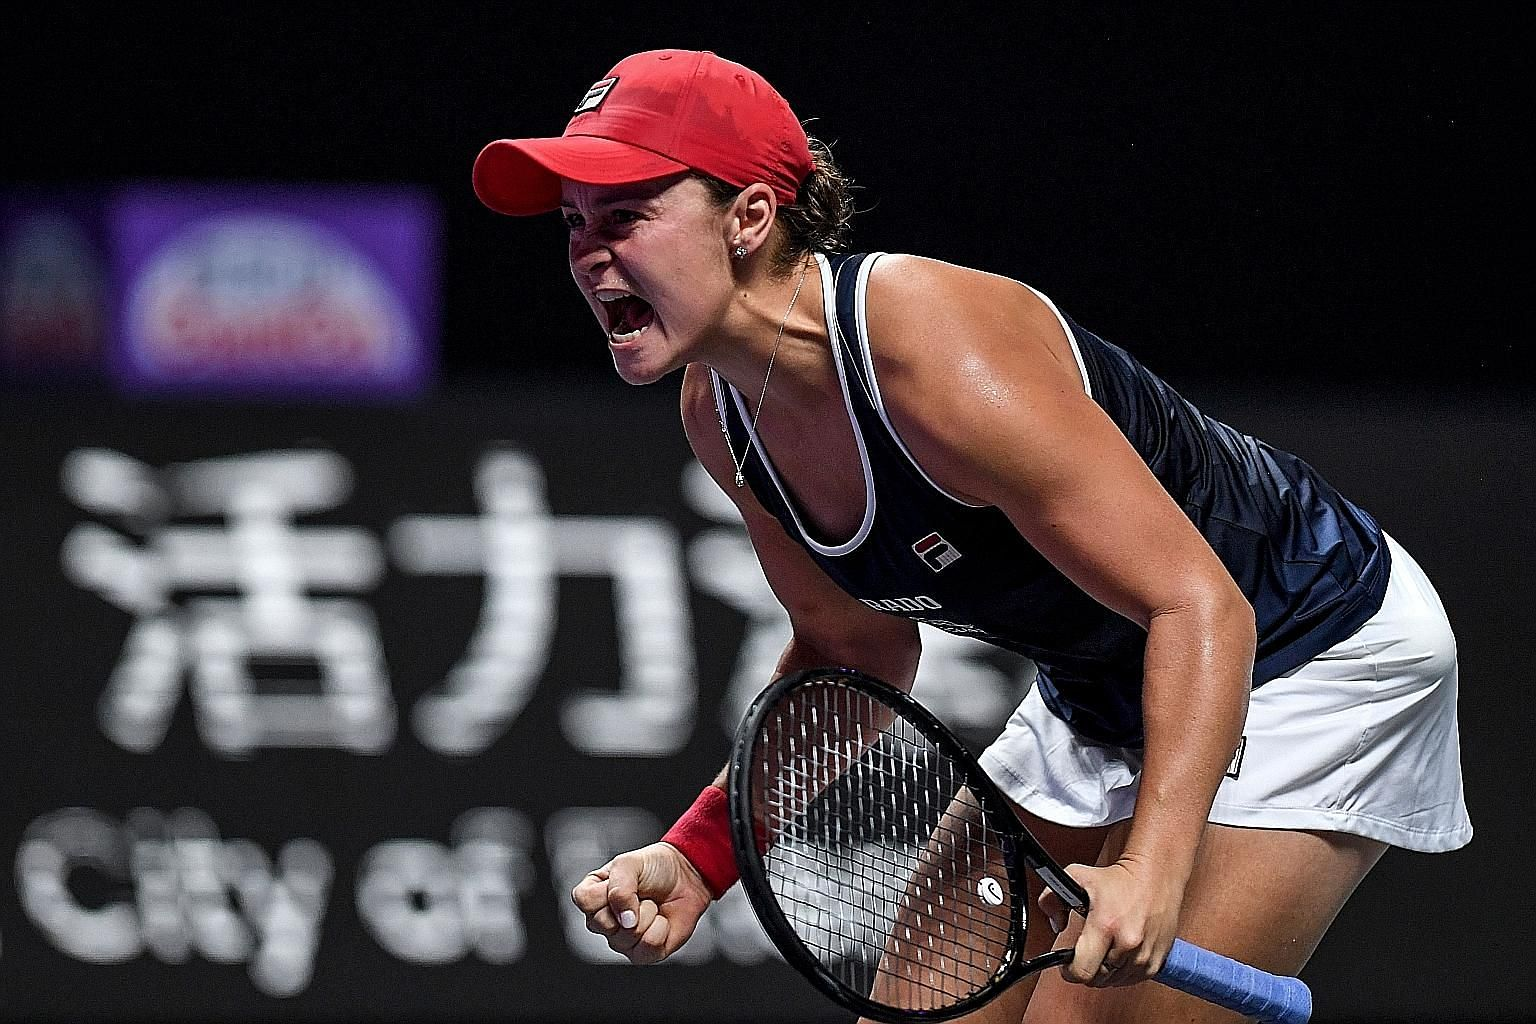 Ashleigh Barty in sheer ecstasy after beating Elina Svitolina of Ukraine 6-4, 6-3 in the final in Shenzhen yesterday. She is the first Australian to win the WTA Finals since Evonne Goolagong Cawley claimed her second title in 1976.